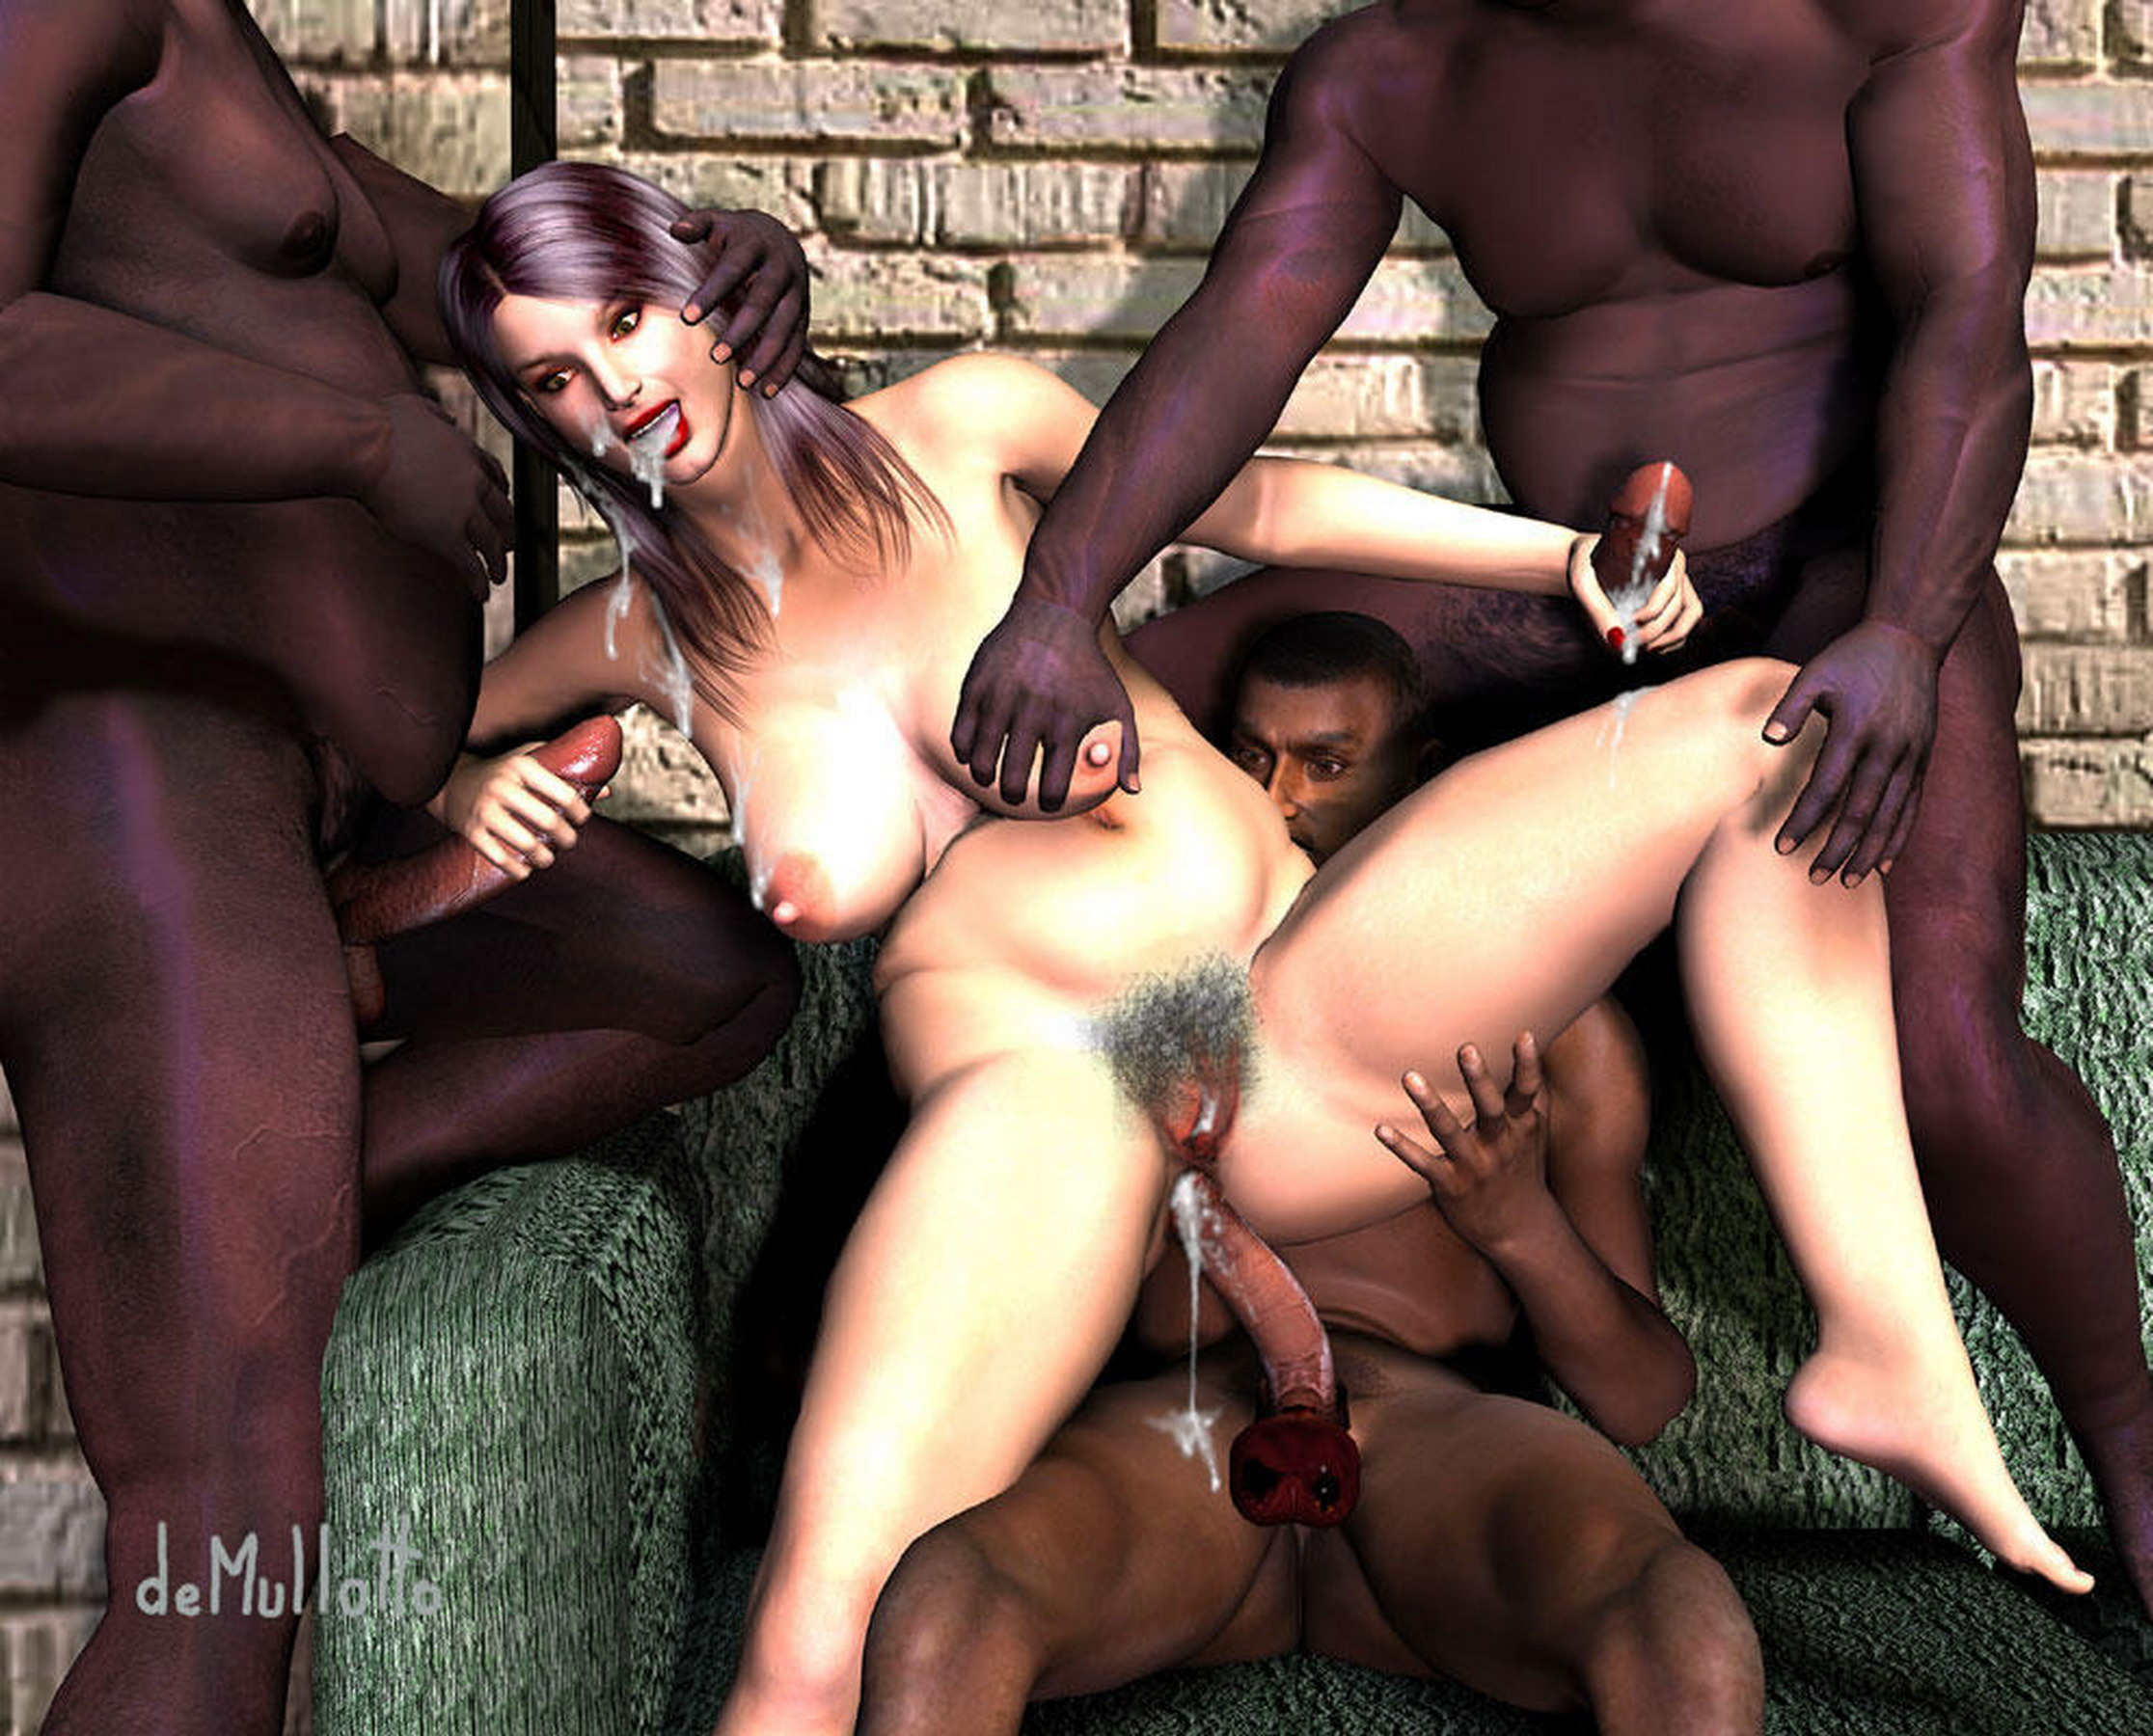 Cartoon 3dsex games for download free erotic clip